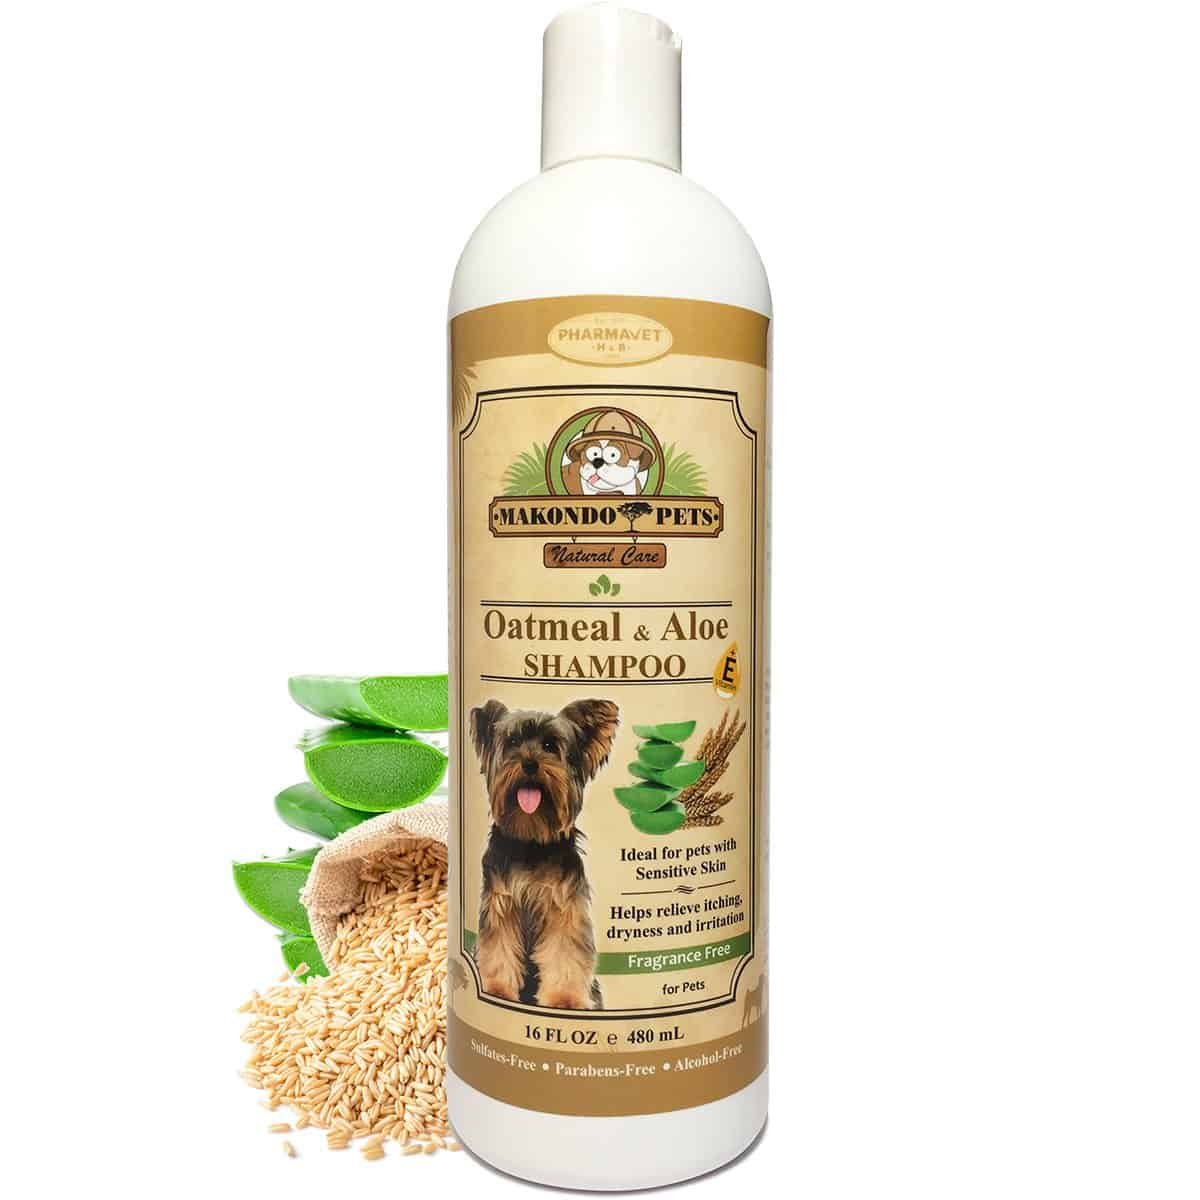 Oatmeal Dog Shampoo with Aloe Vera and Vitamin E - Hypoallergenic Dog Shampoo for Pets with Dry